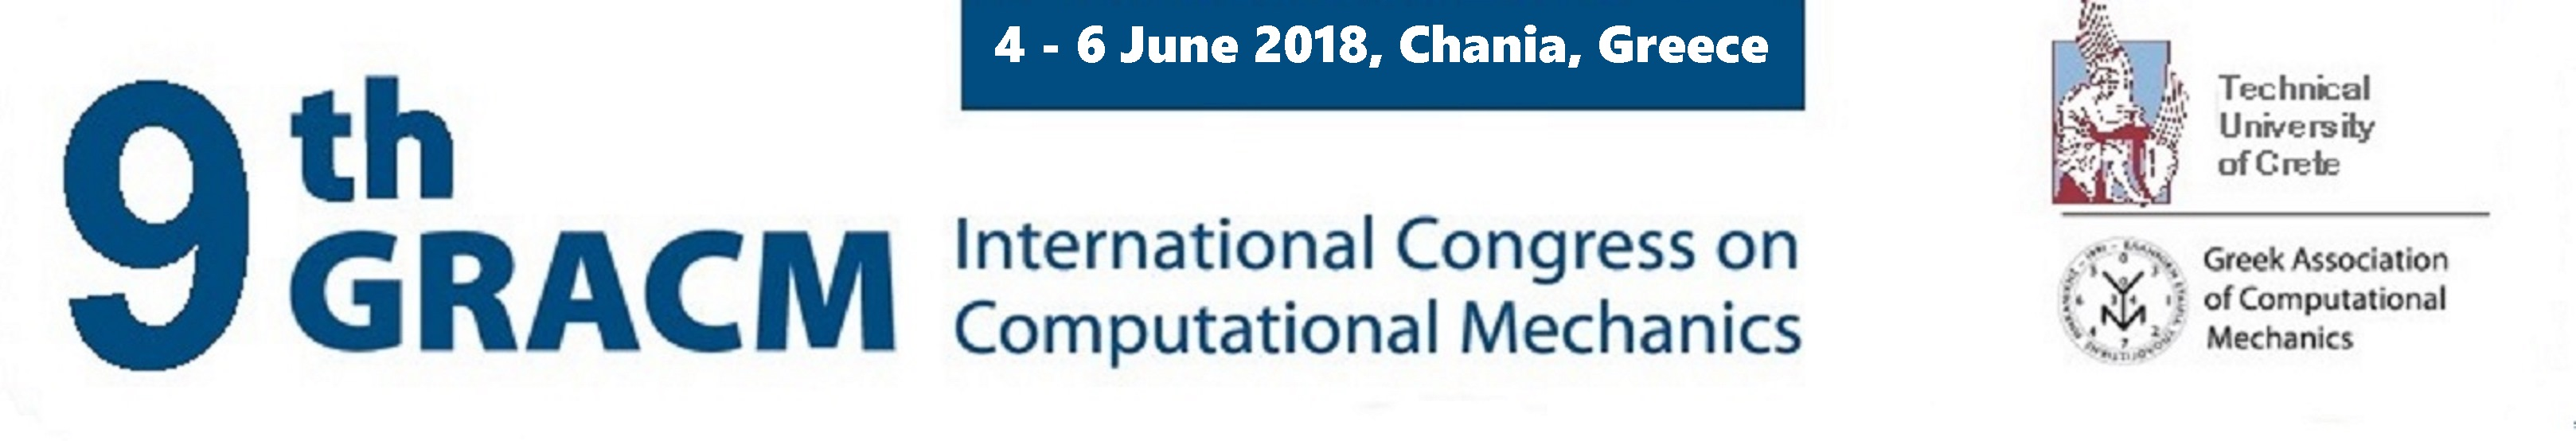 9th GRACM International Congress on Computational Mechanics